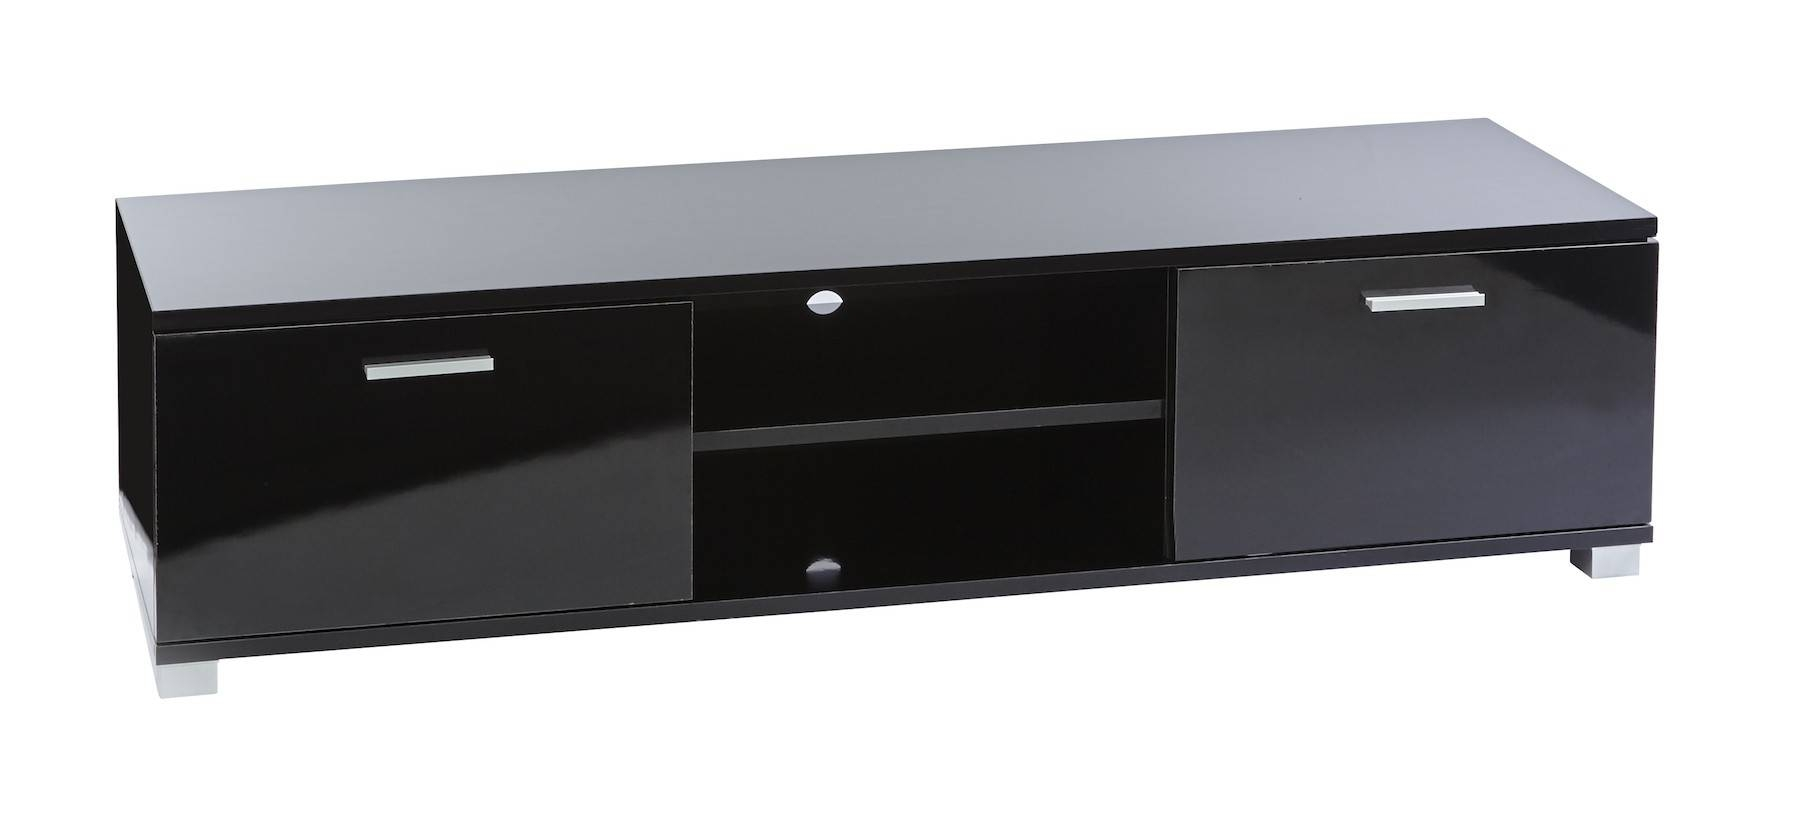 Sd Ht01 Black Gloss Tv Cabinet For Up To 60 Inch Lcd Led Screens Within Black Gloss Tv Cabinet (View 6 of 15)